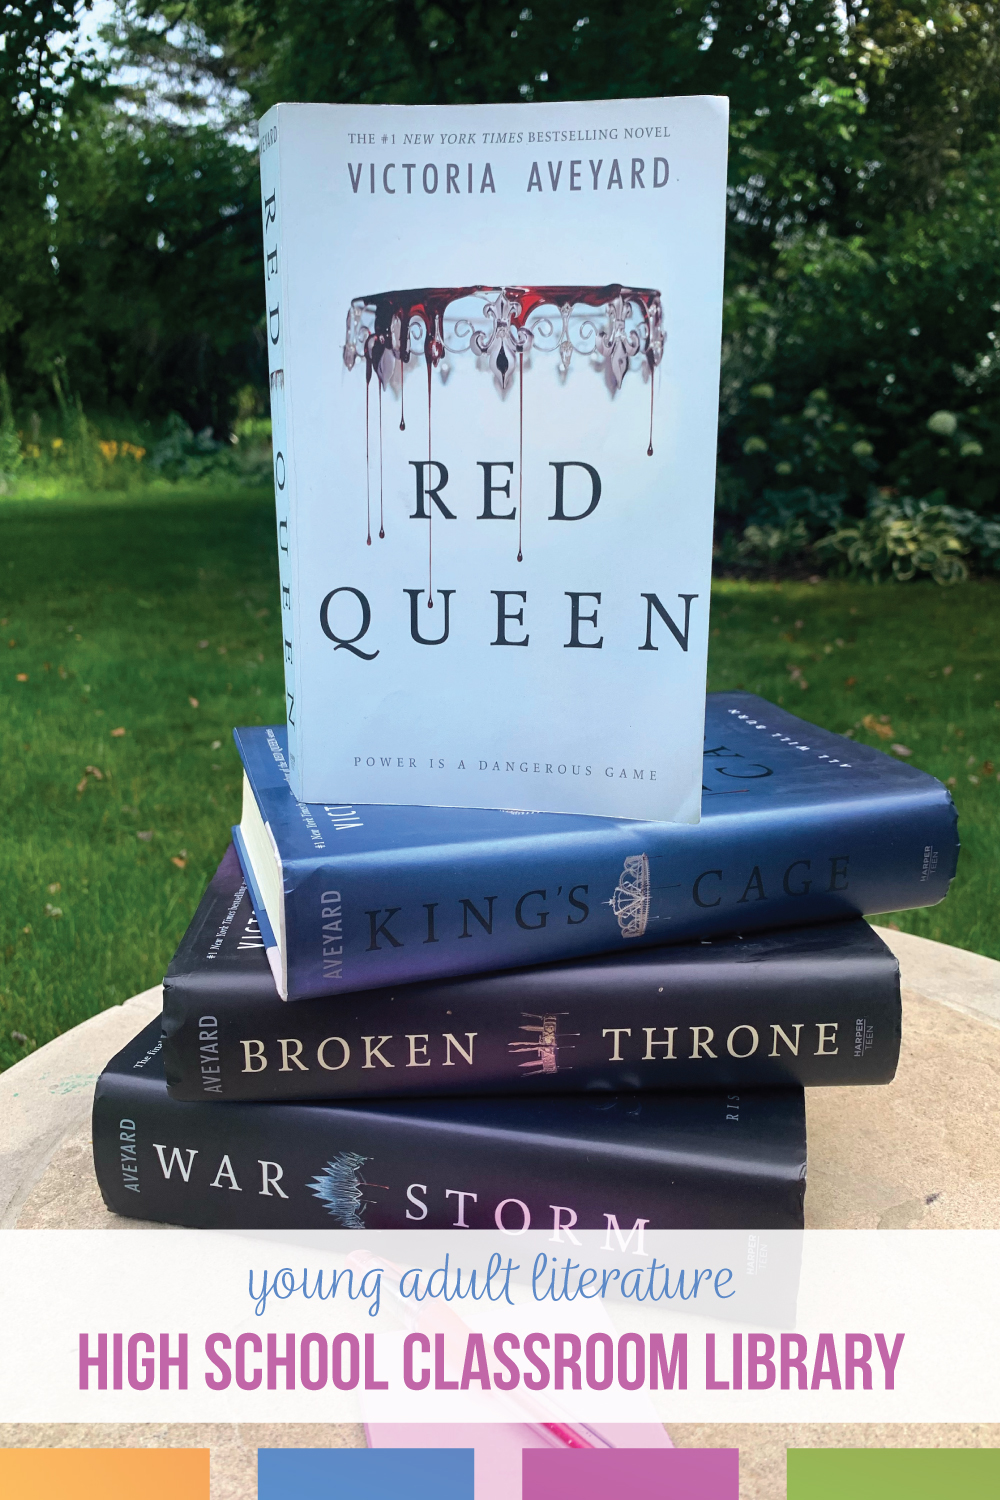 Teaching Red Queen provides plenty of learning opportunities. In this dystopian young adult literature, high school ELA teacher offers advice and ideas for teaching Red Queen.